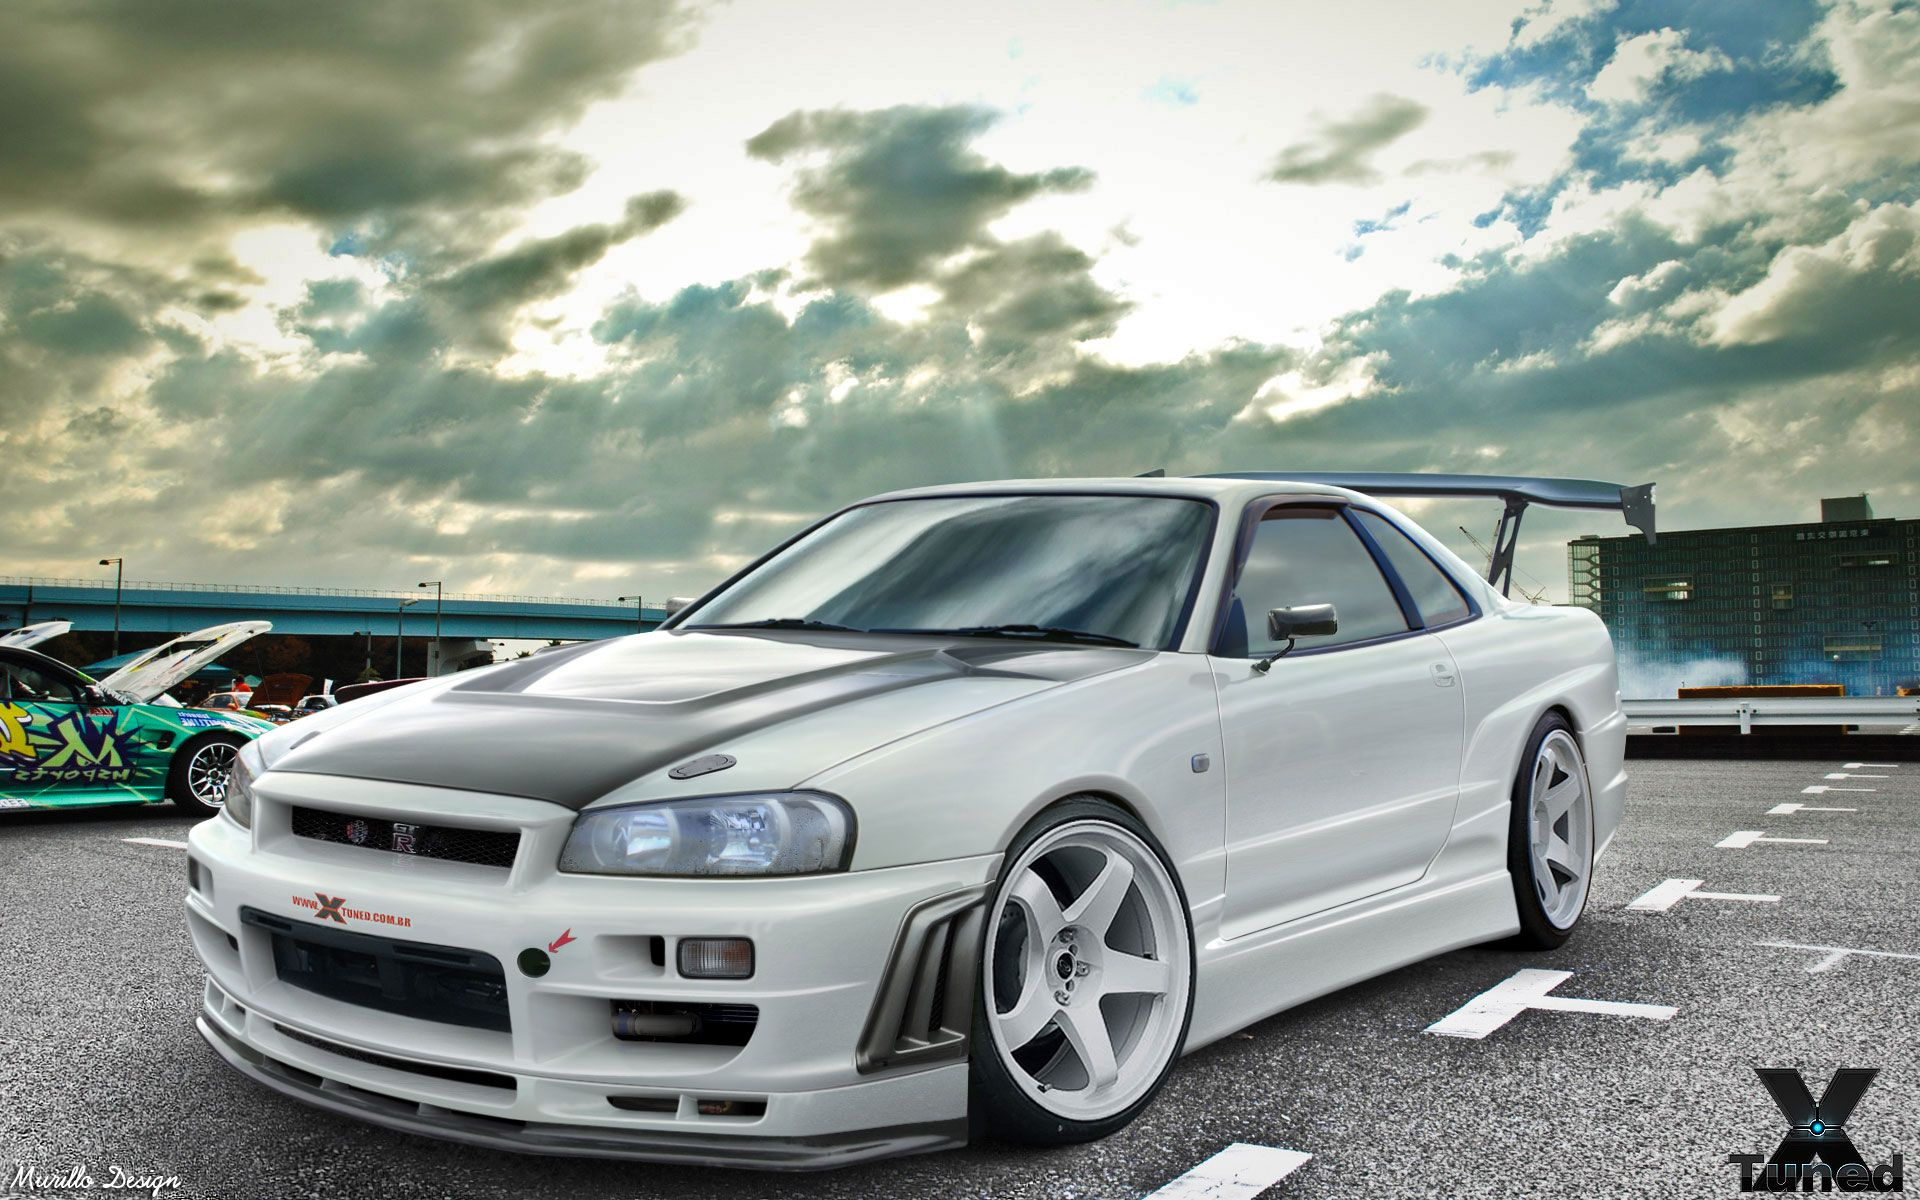 nissan skyline r34 gt r v spec 2000 nismo nissan white front left angle view hd wallpapers. Black Bedroom Furniture Sets. Home Design Ideas